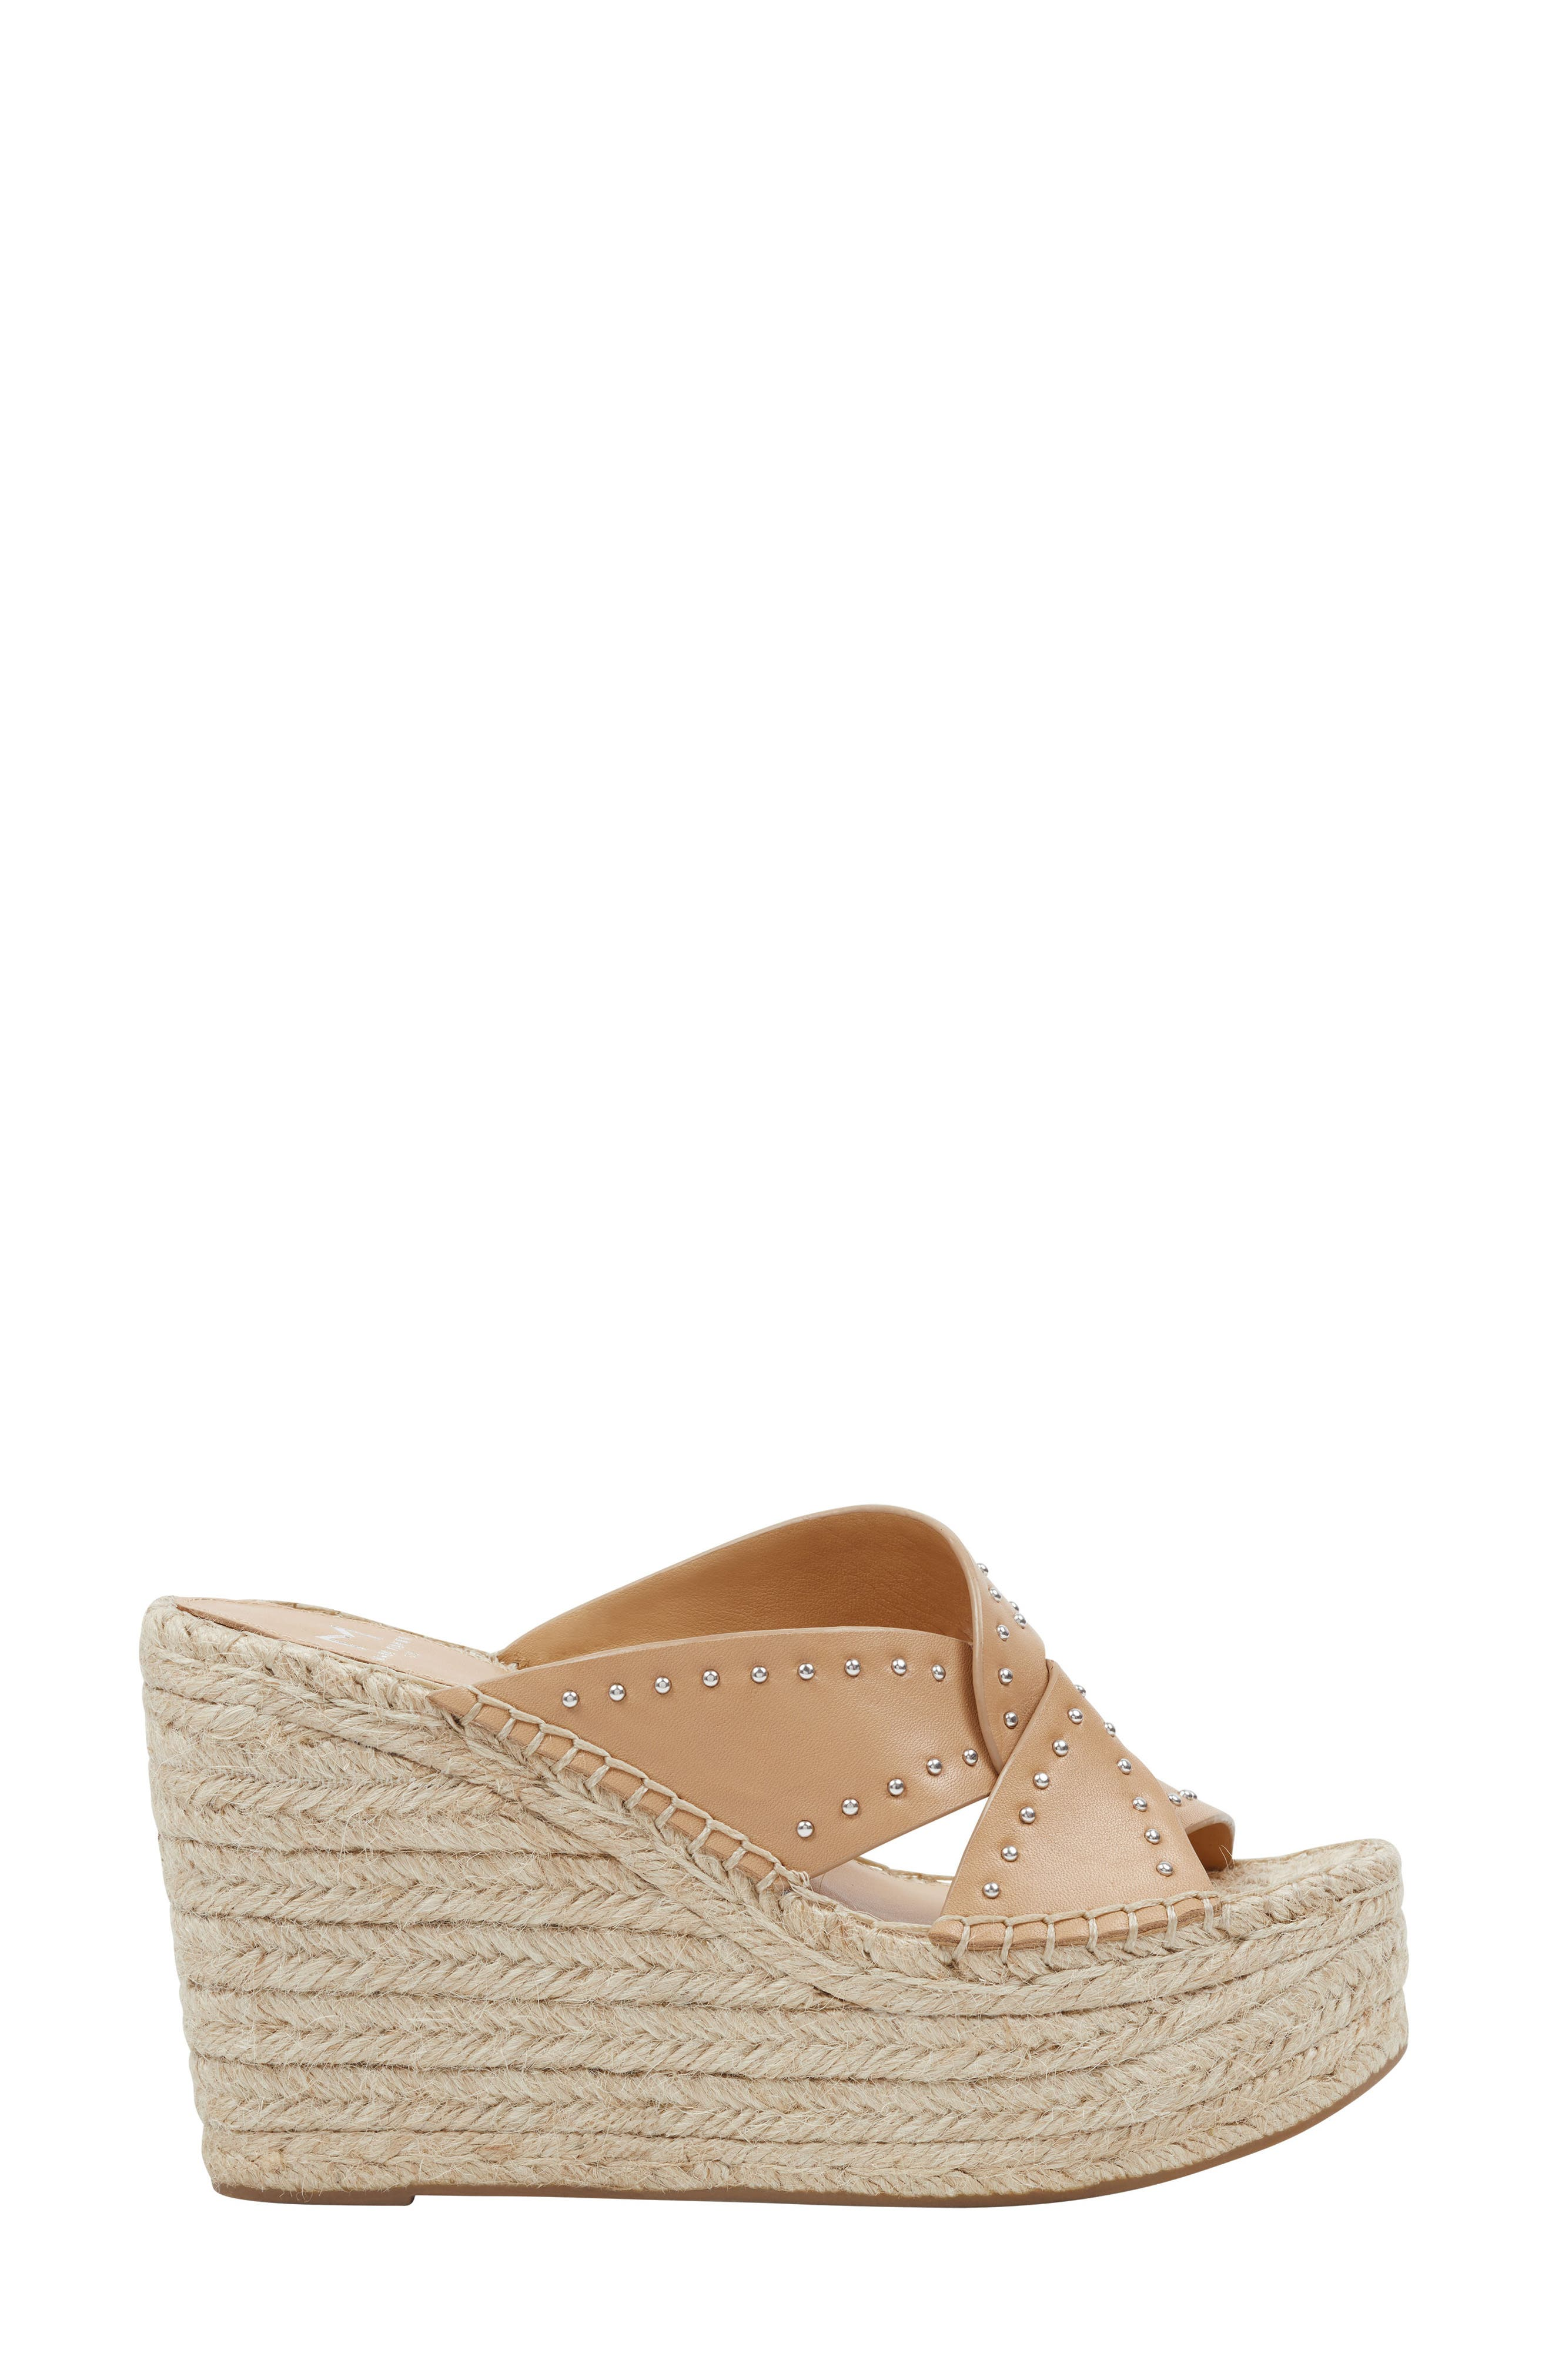 MARC FISHER LTD, Angelina Espadrille Wedge, Alternate thumbnail 3, color, TAN LEATHER